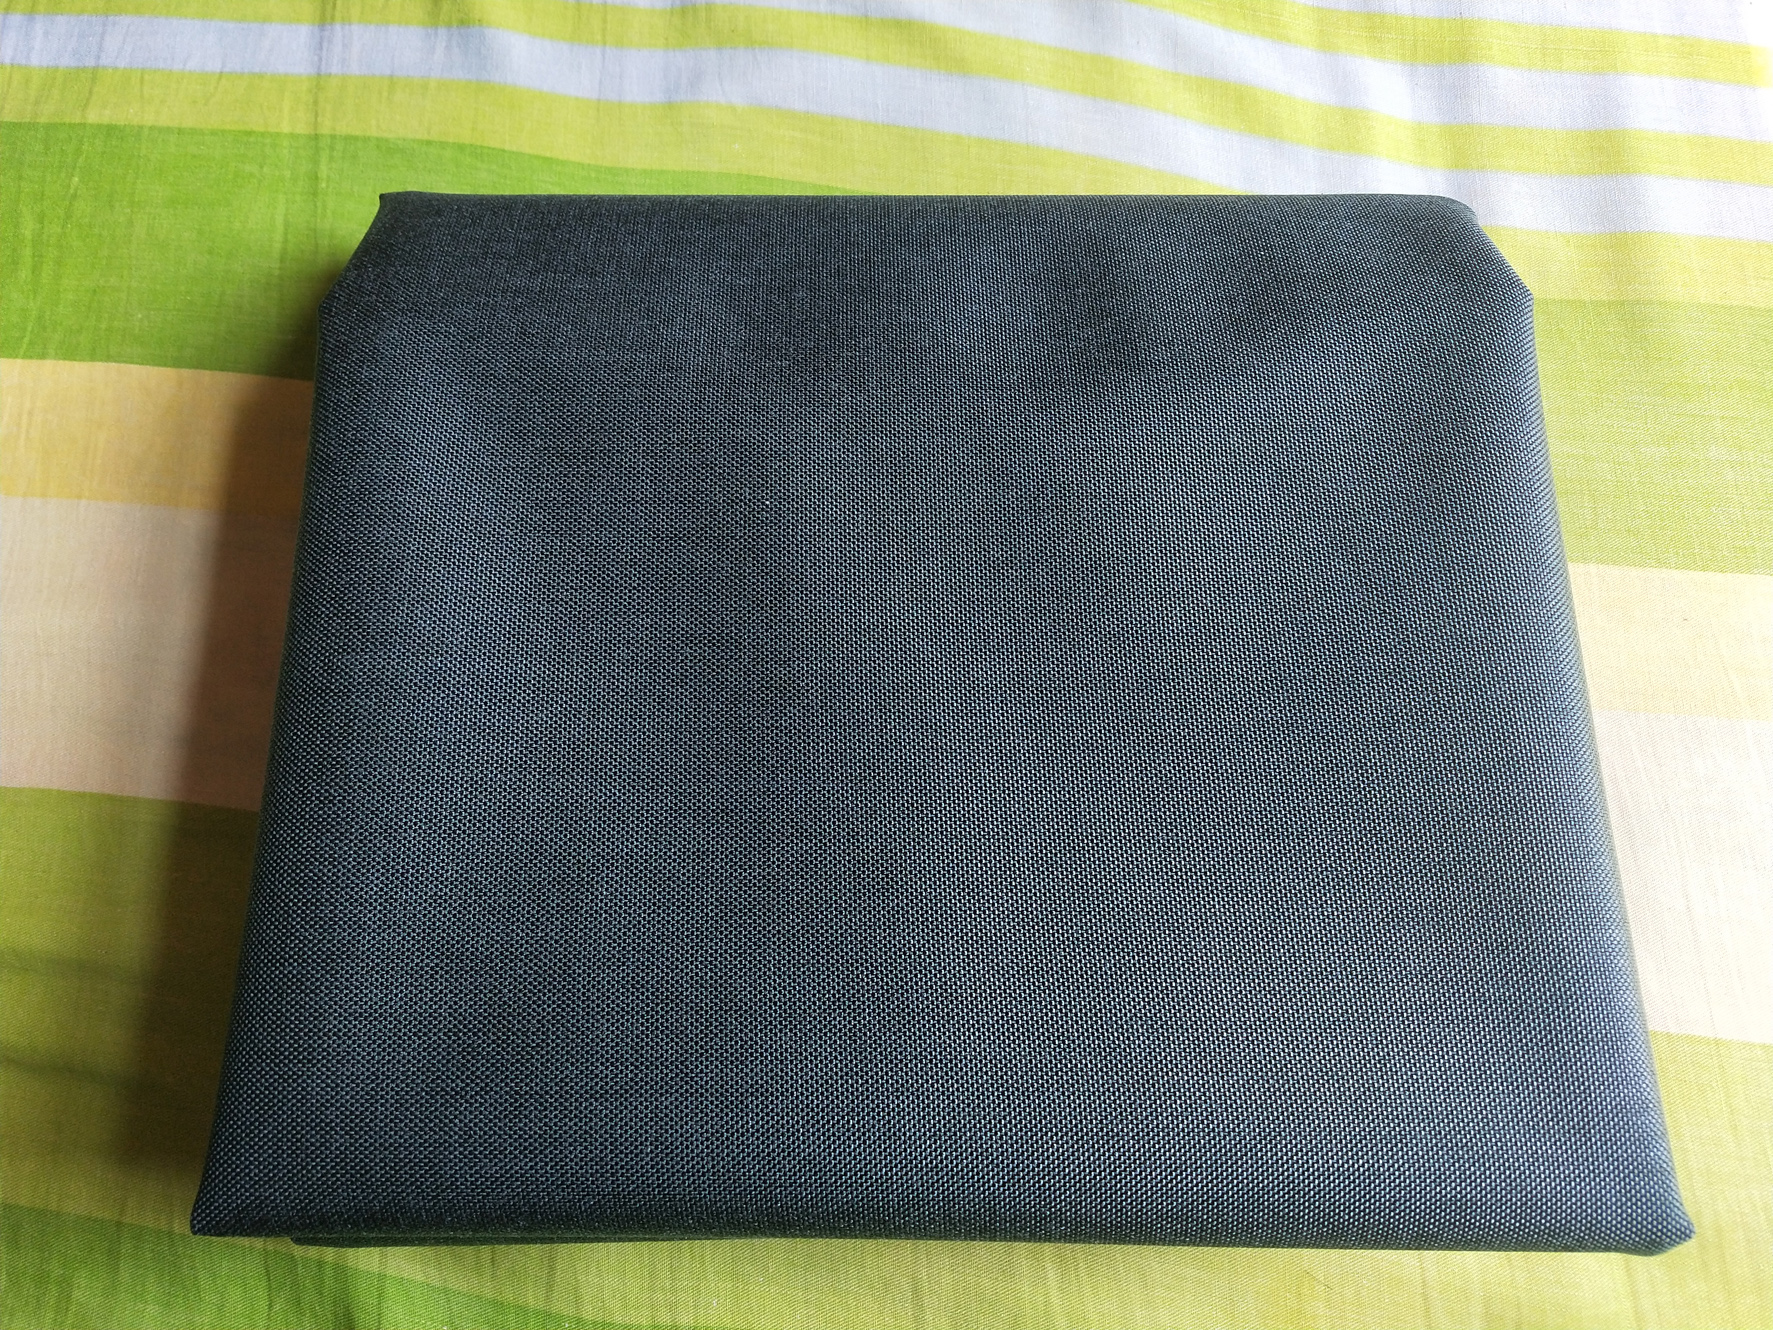 Very Strong Gray Color 1000D Cordura Nylon Fabric, Short-time Waterproof Fabric,  Anti-tear Wear-resistant Cloth